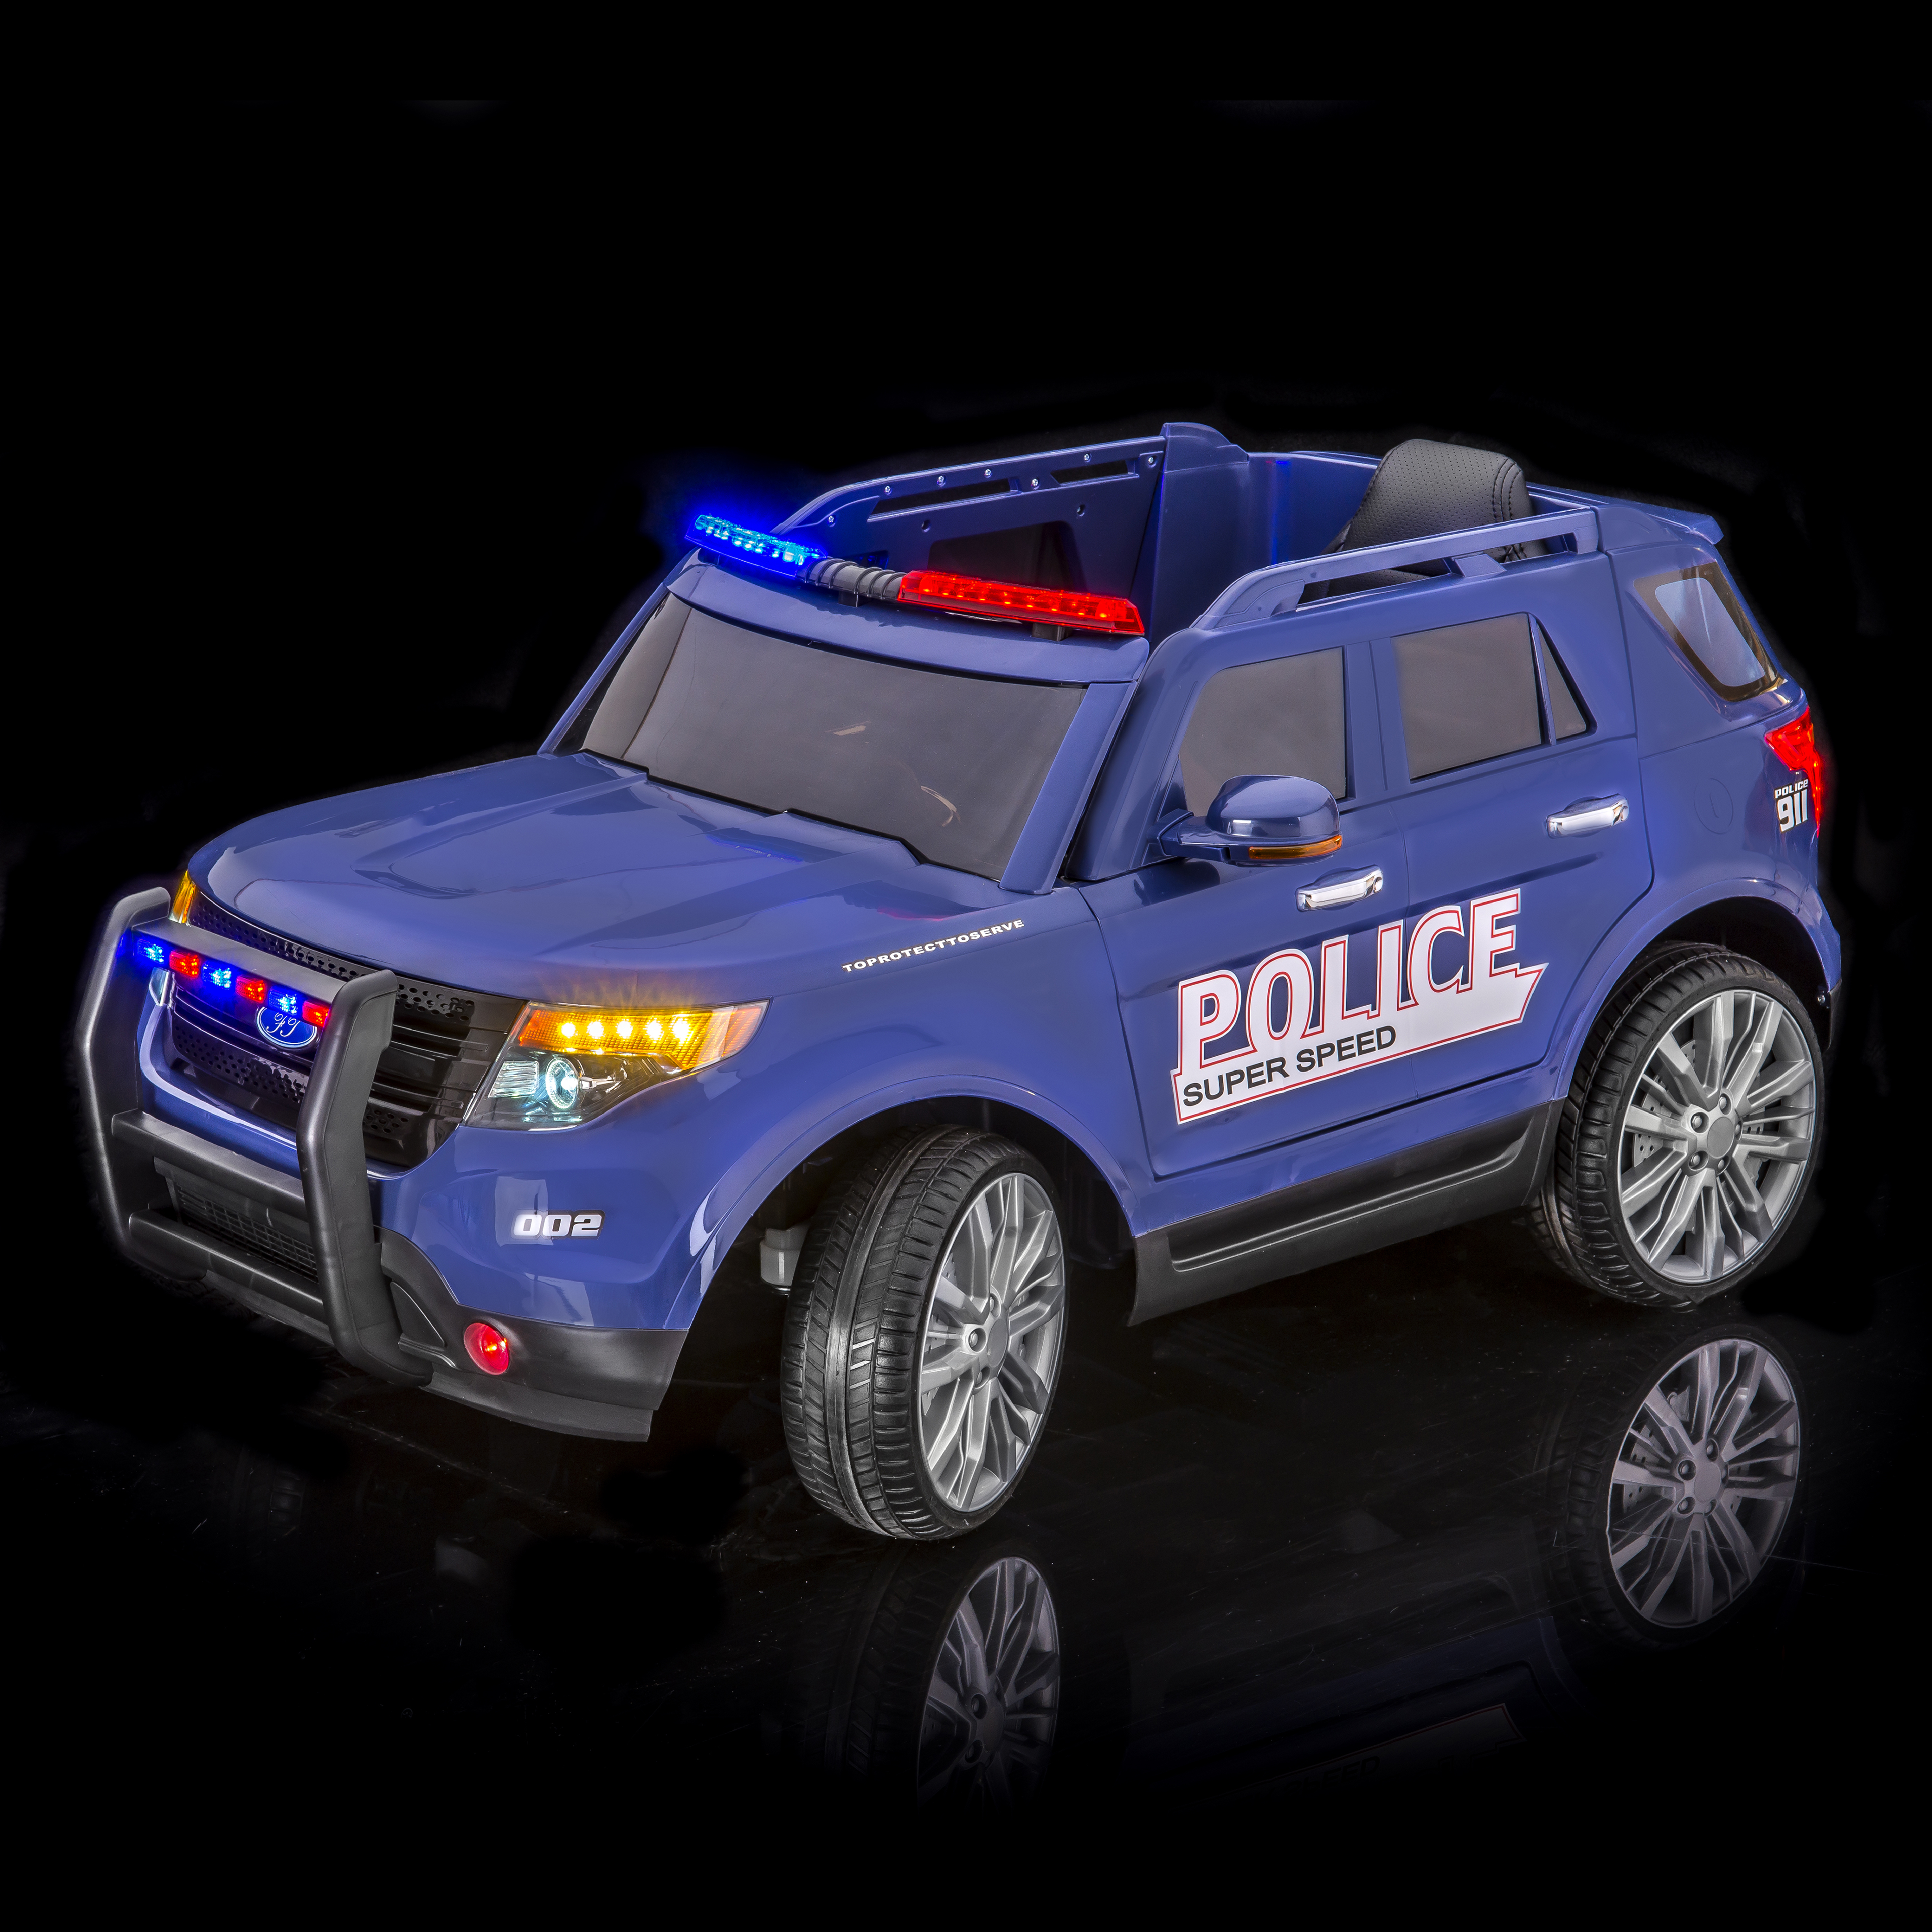 SPORTrax Ford Explorer Style Kid's Ride On Police Truck, Battery Powered, Remote Control, w FREE MP3 Player... by